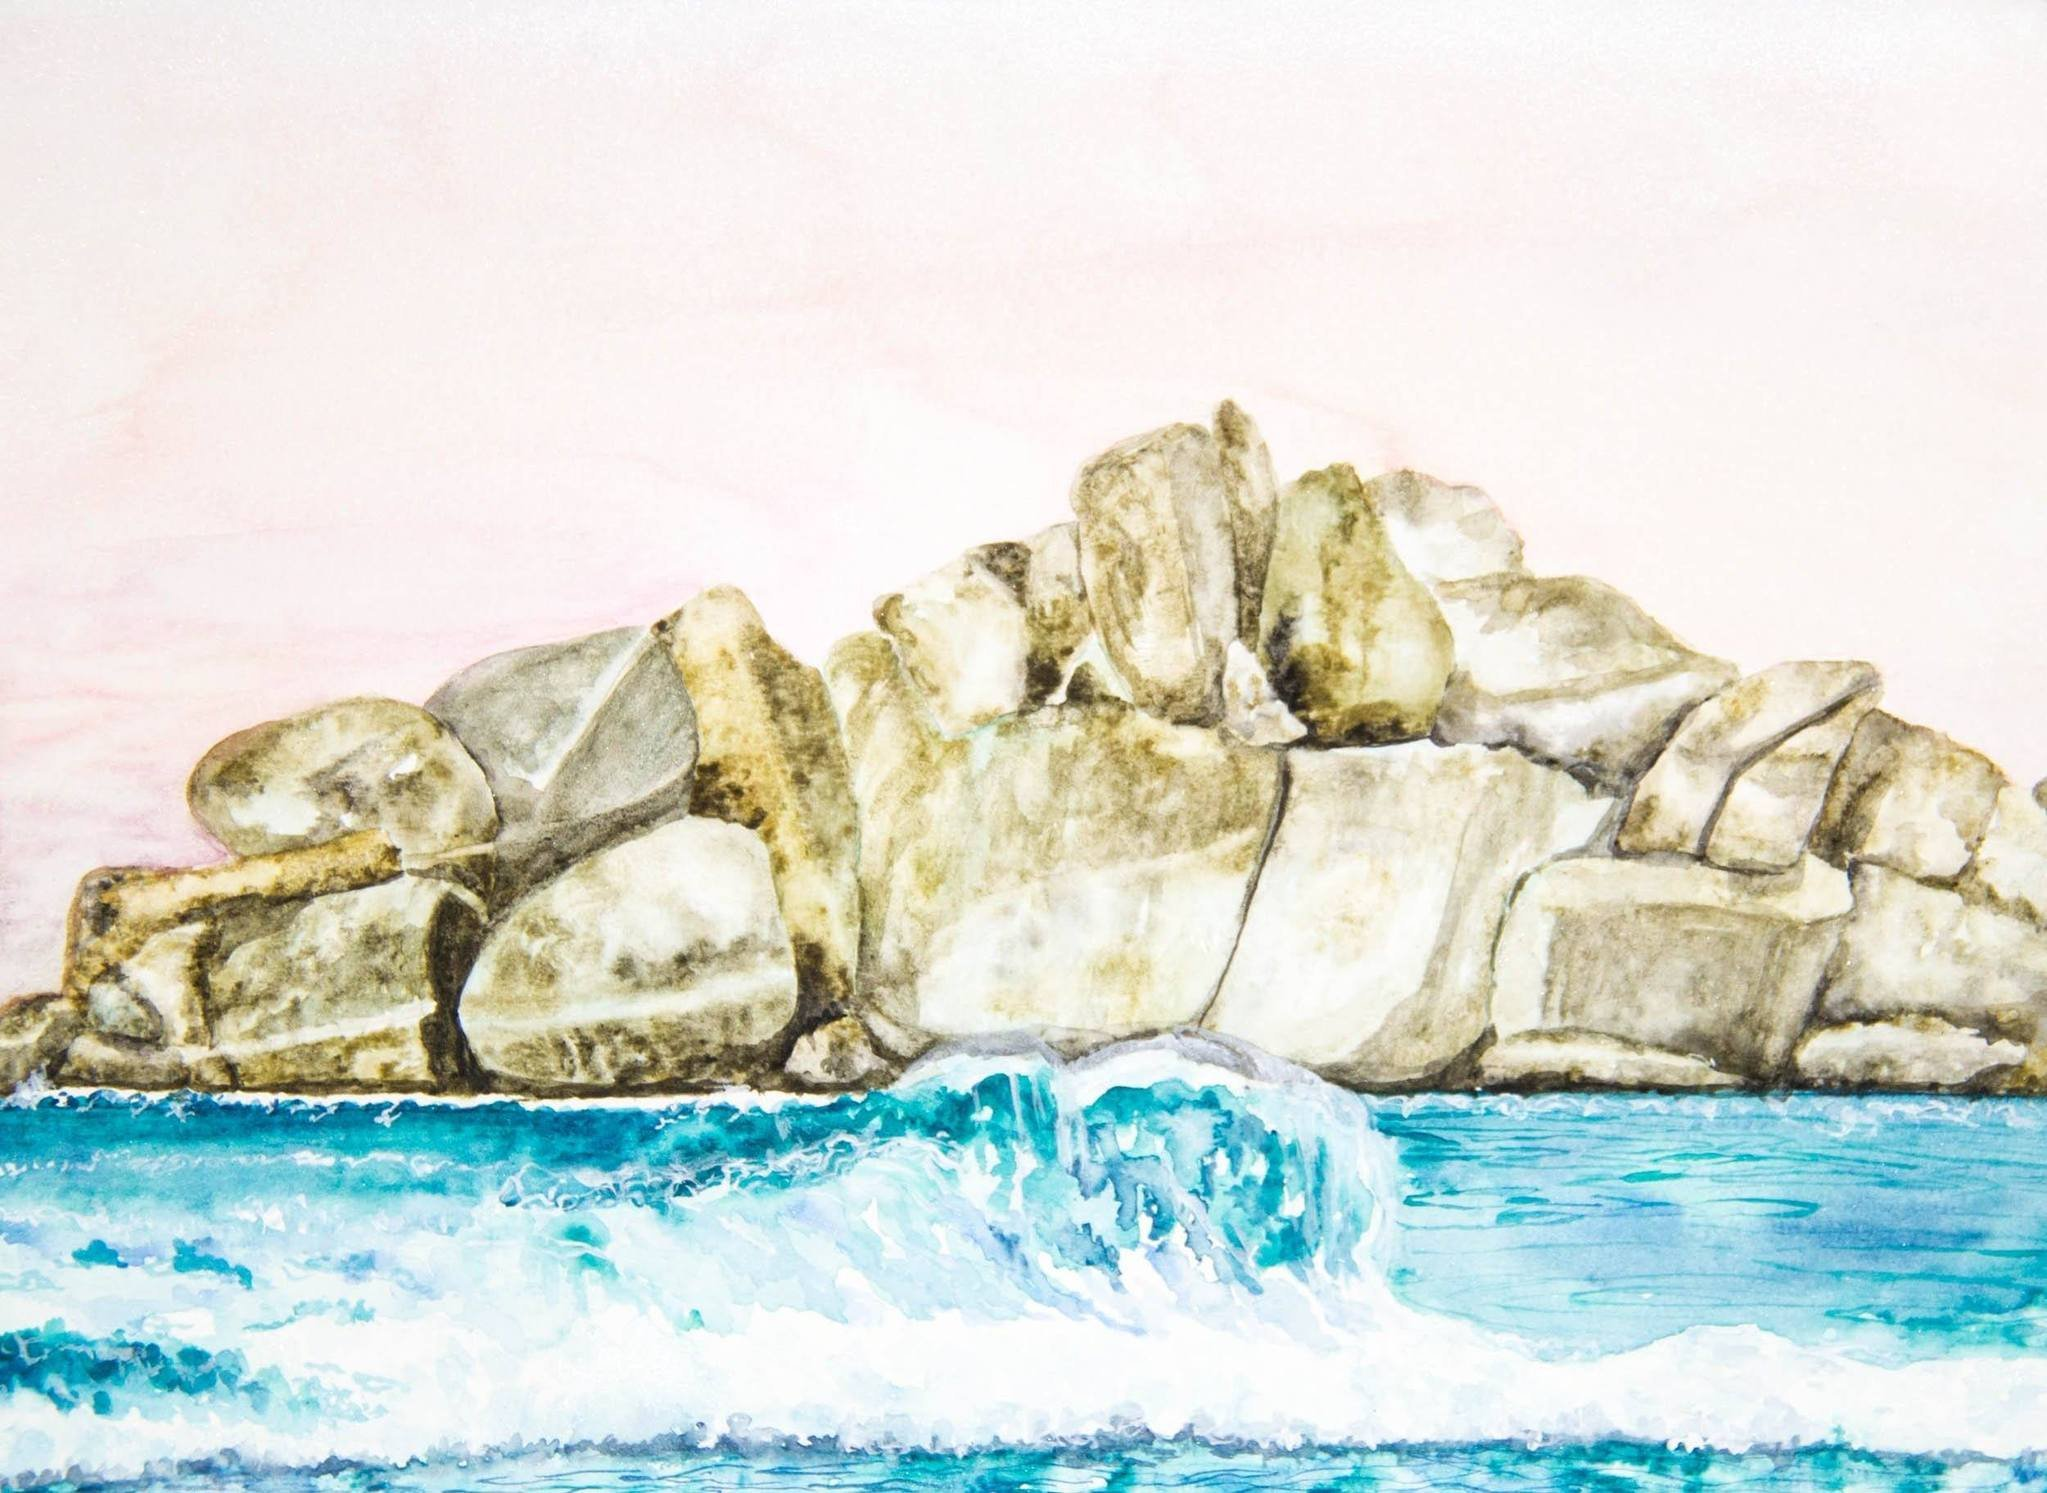 WEST COAST VIBES AND ROCKY SHORE LINES THIS PRINT IS A LOVE NOTE TO THE CALIFORNIA COAST